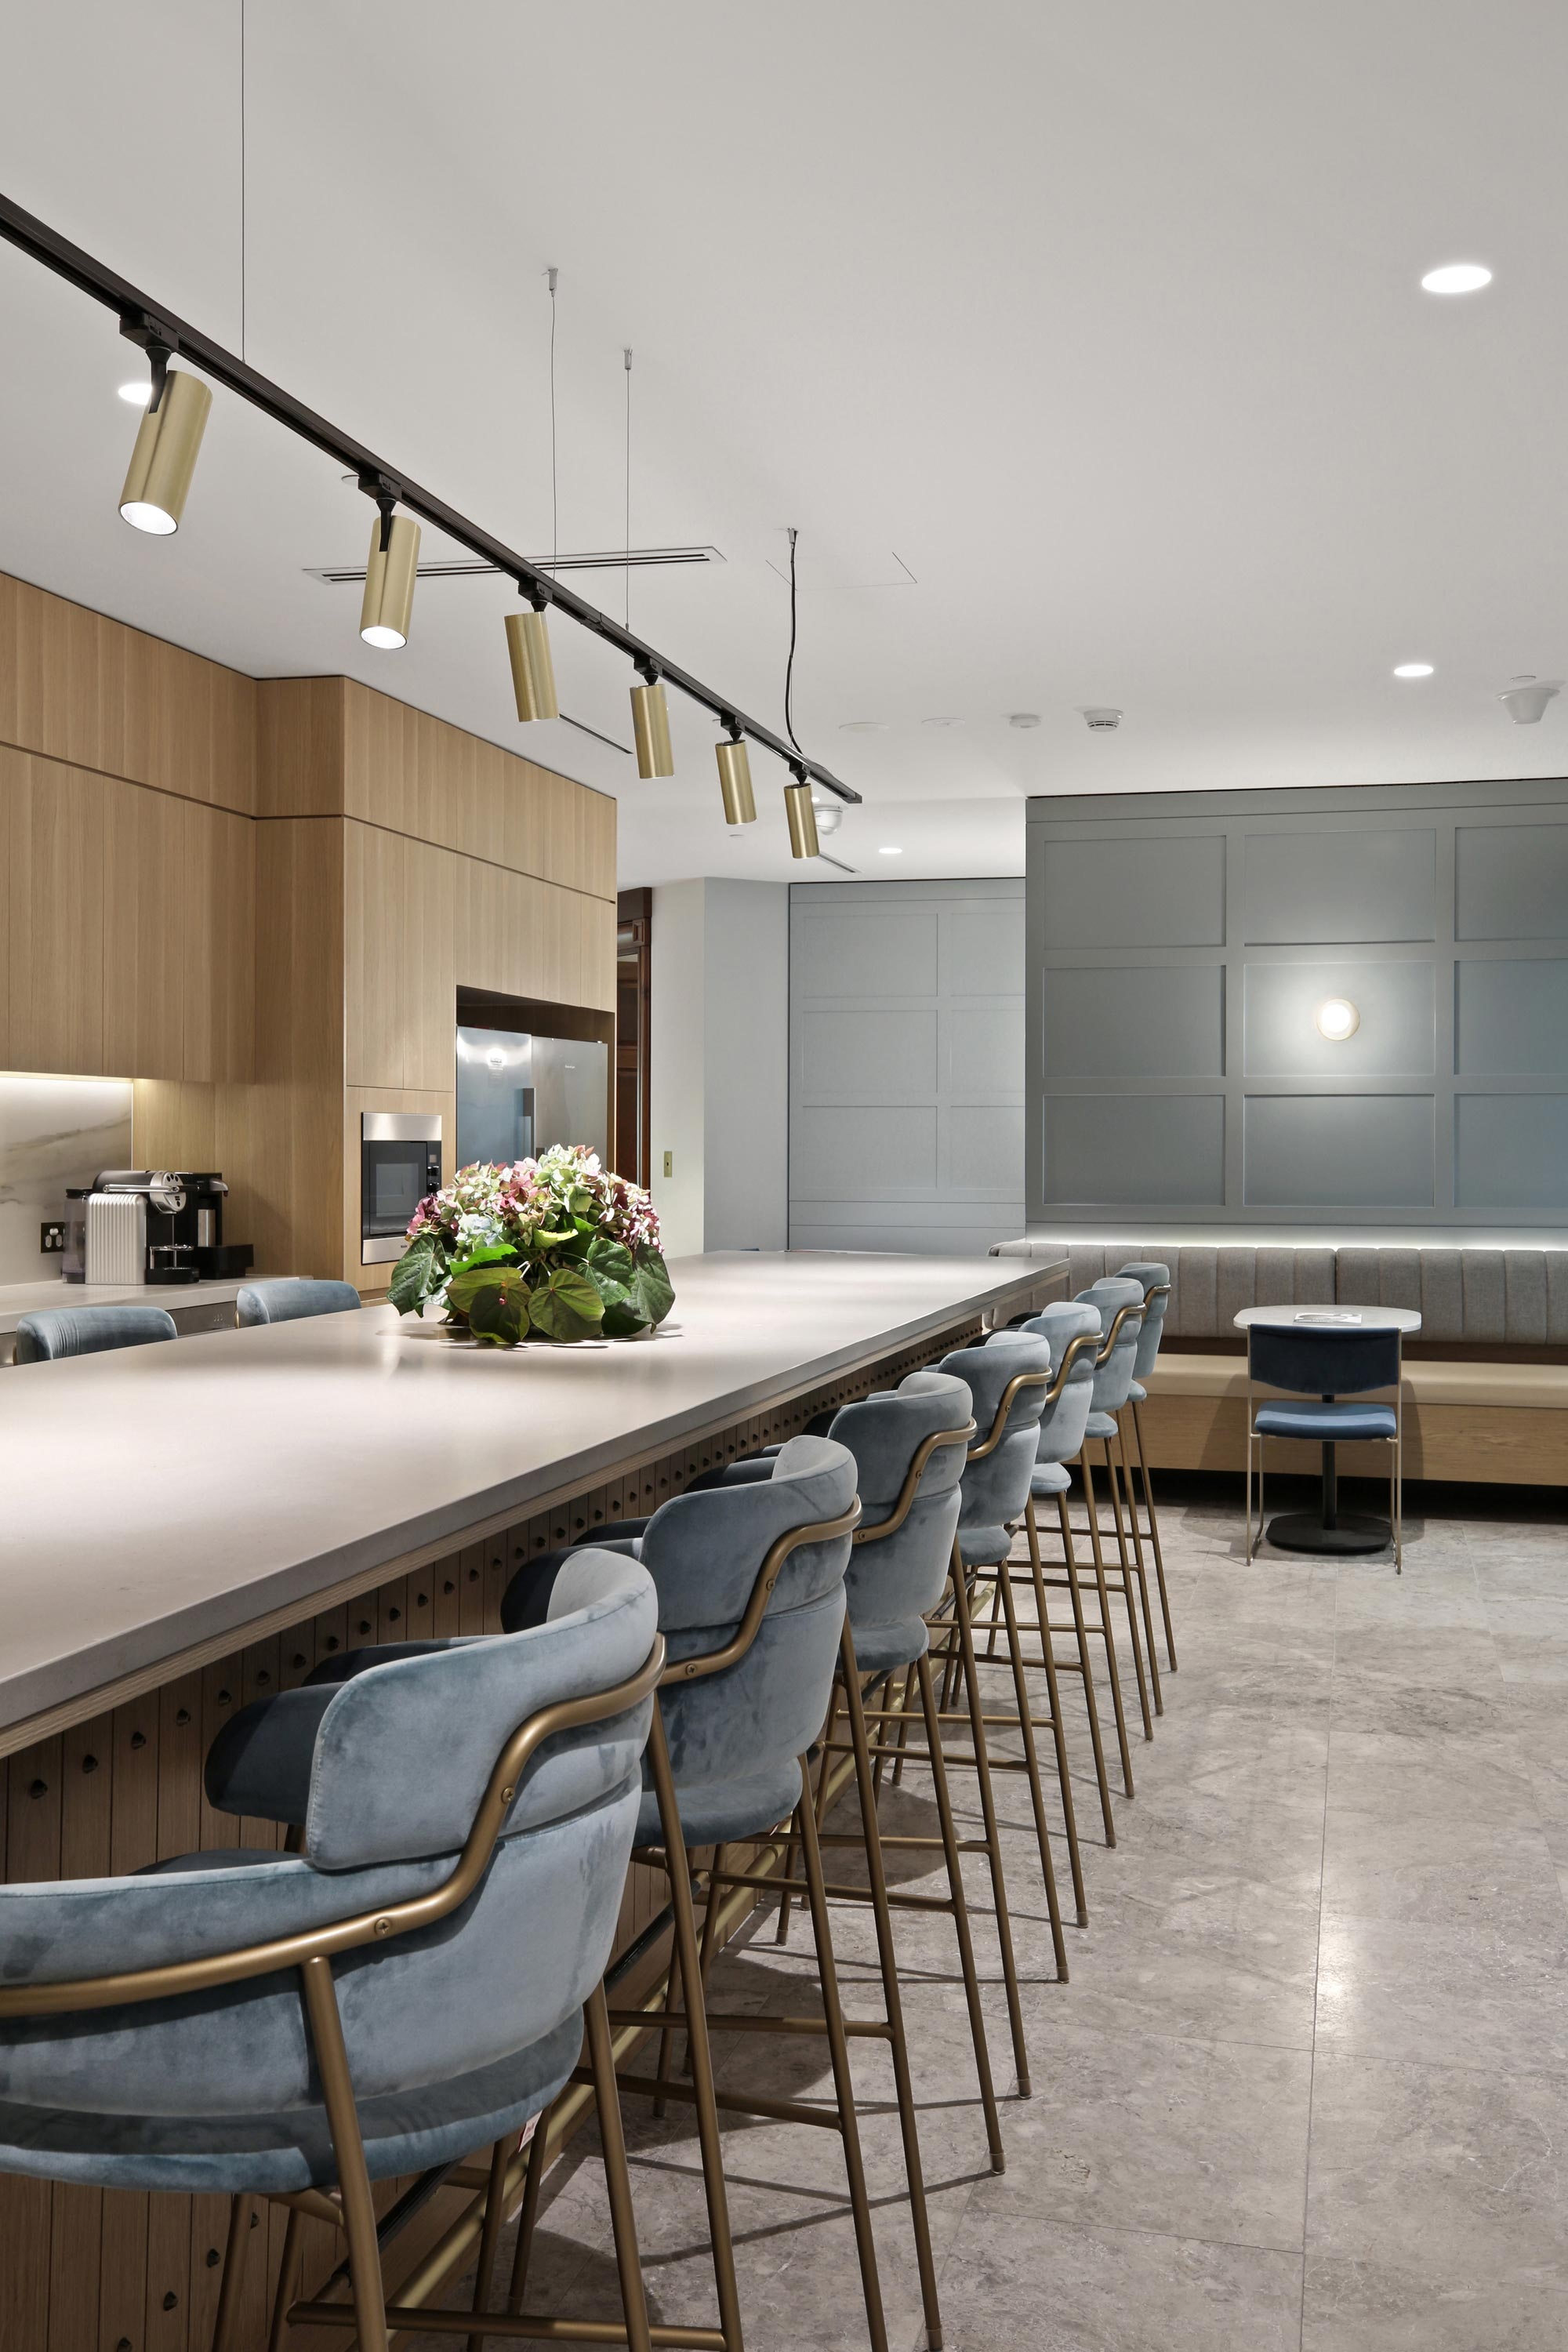 Valmont kkr 1 macquarie square high kitchen 4